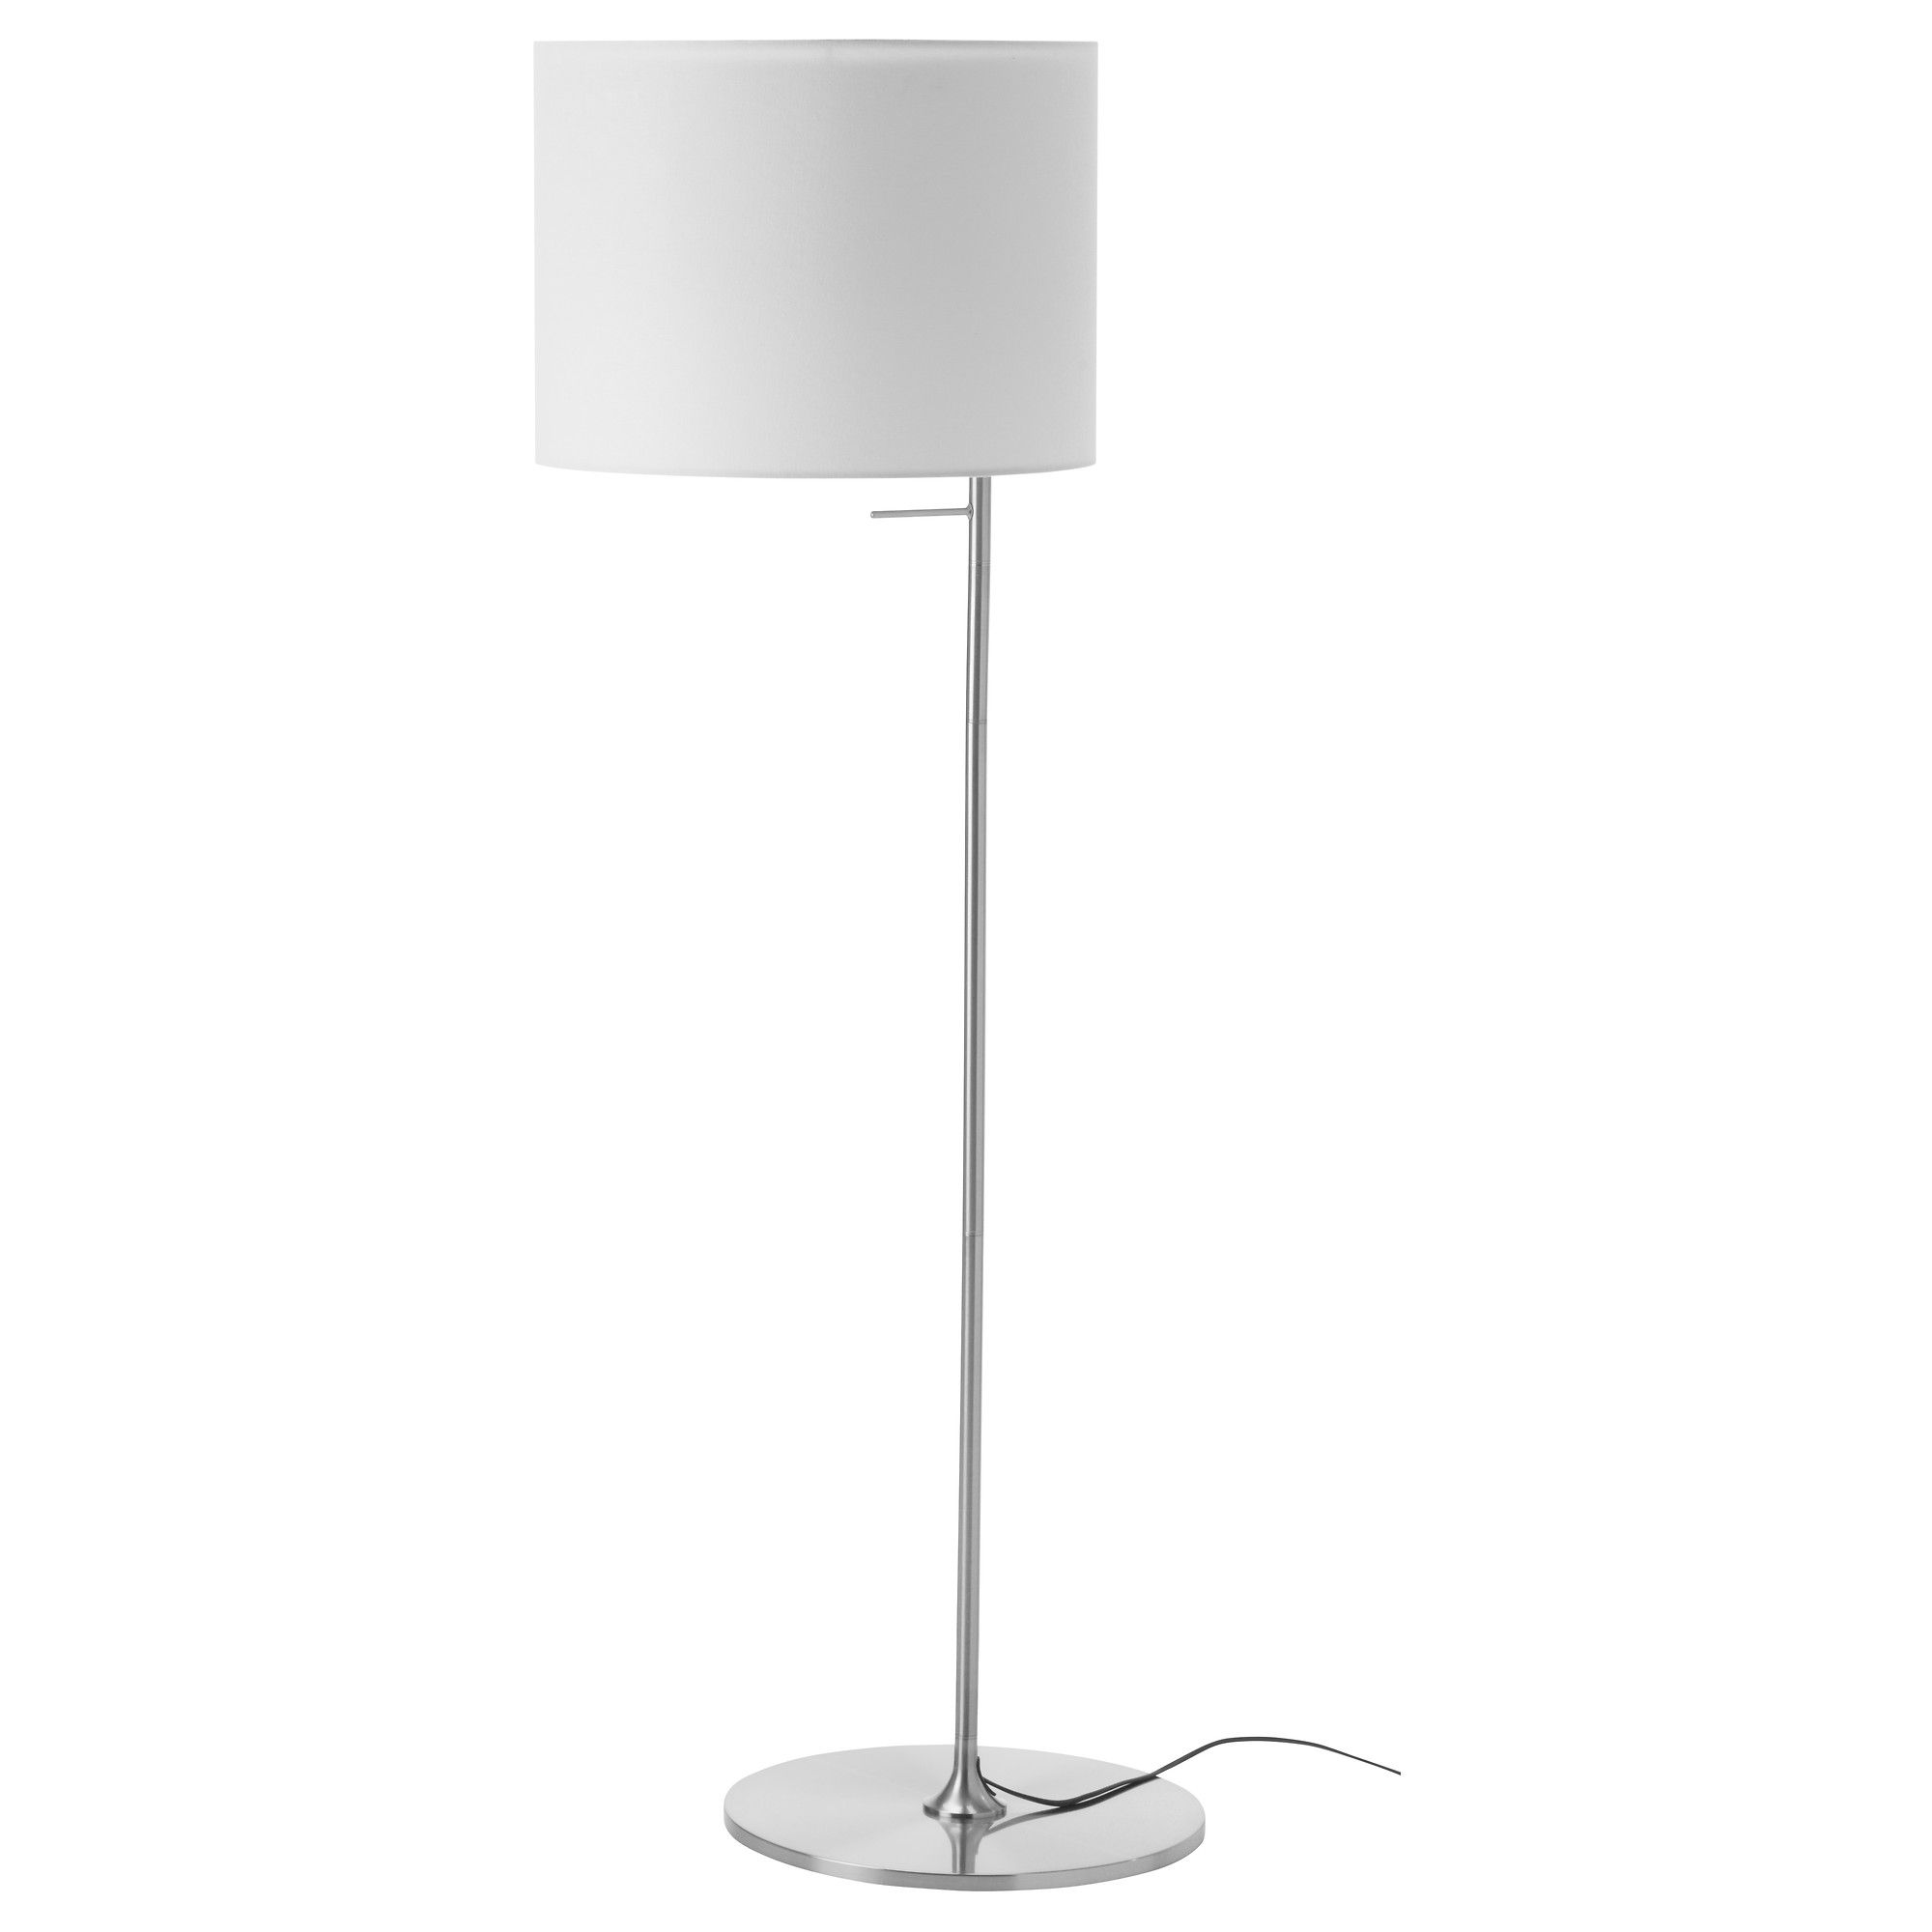 Super STOCKHOLM Staande lamp - IKEA | Huis in 2018 | Pinterest - Lampen #PC92